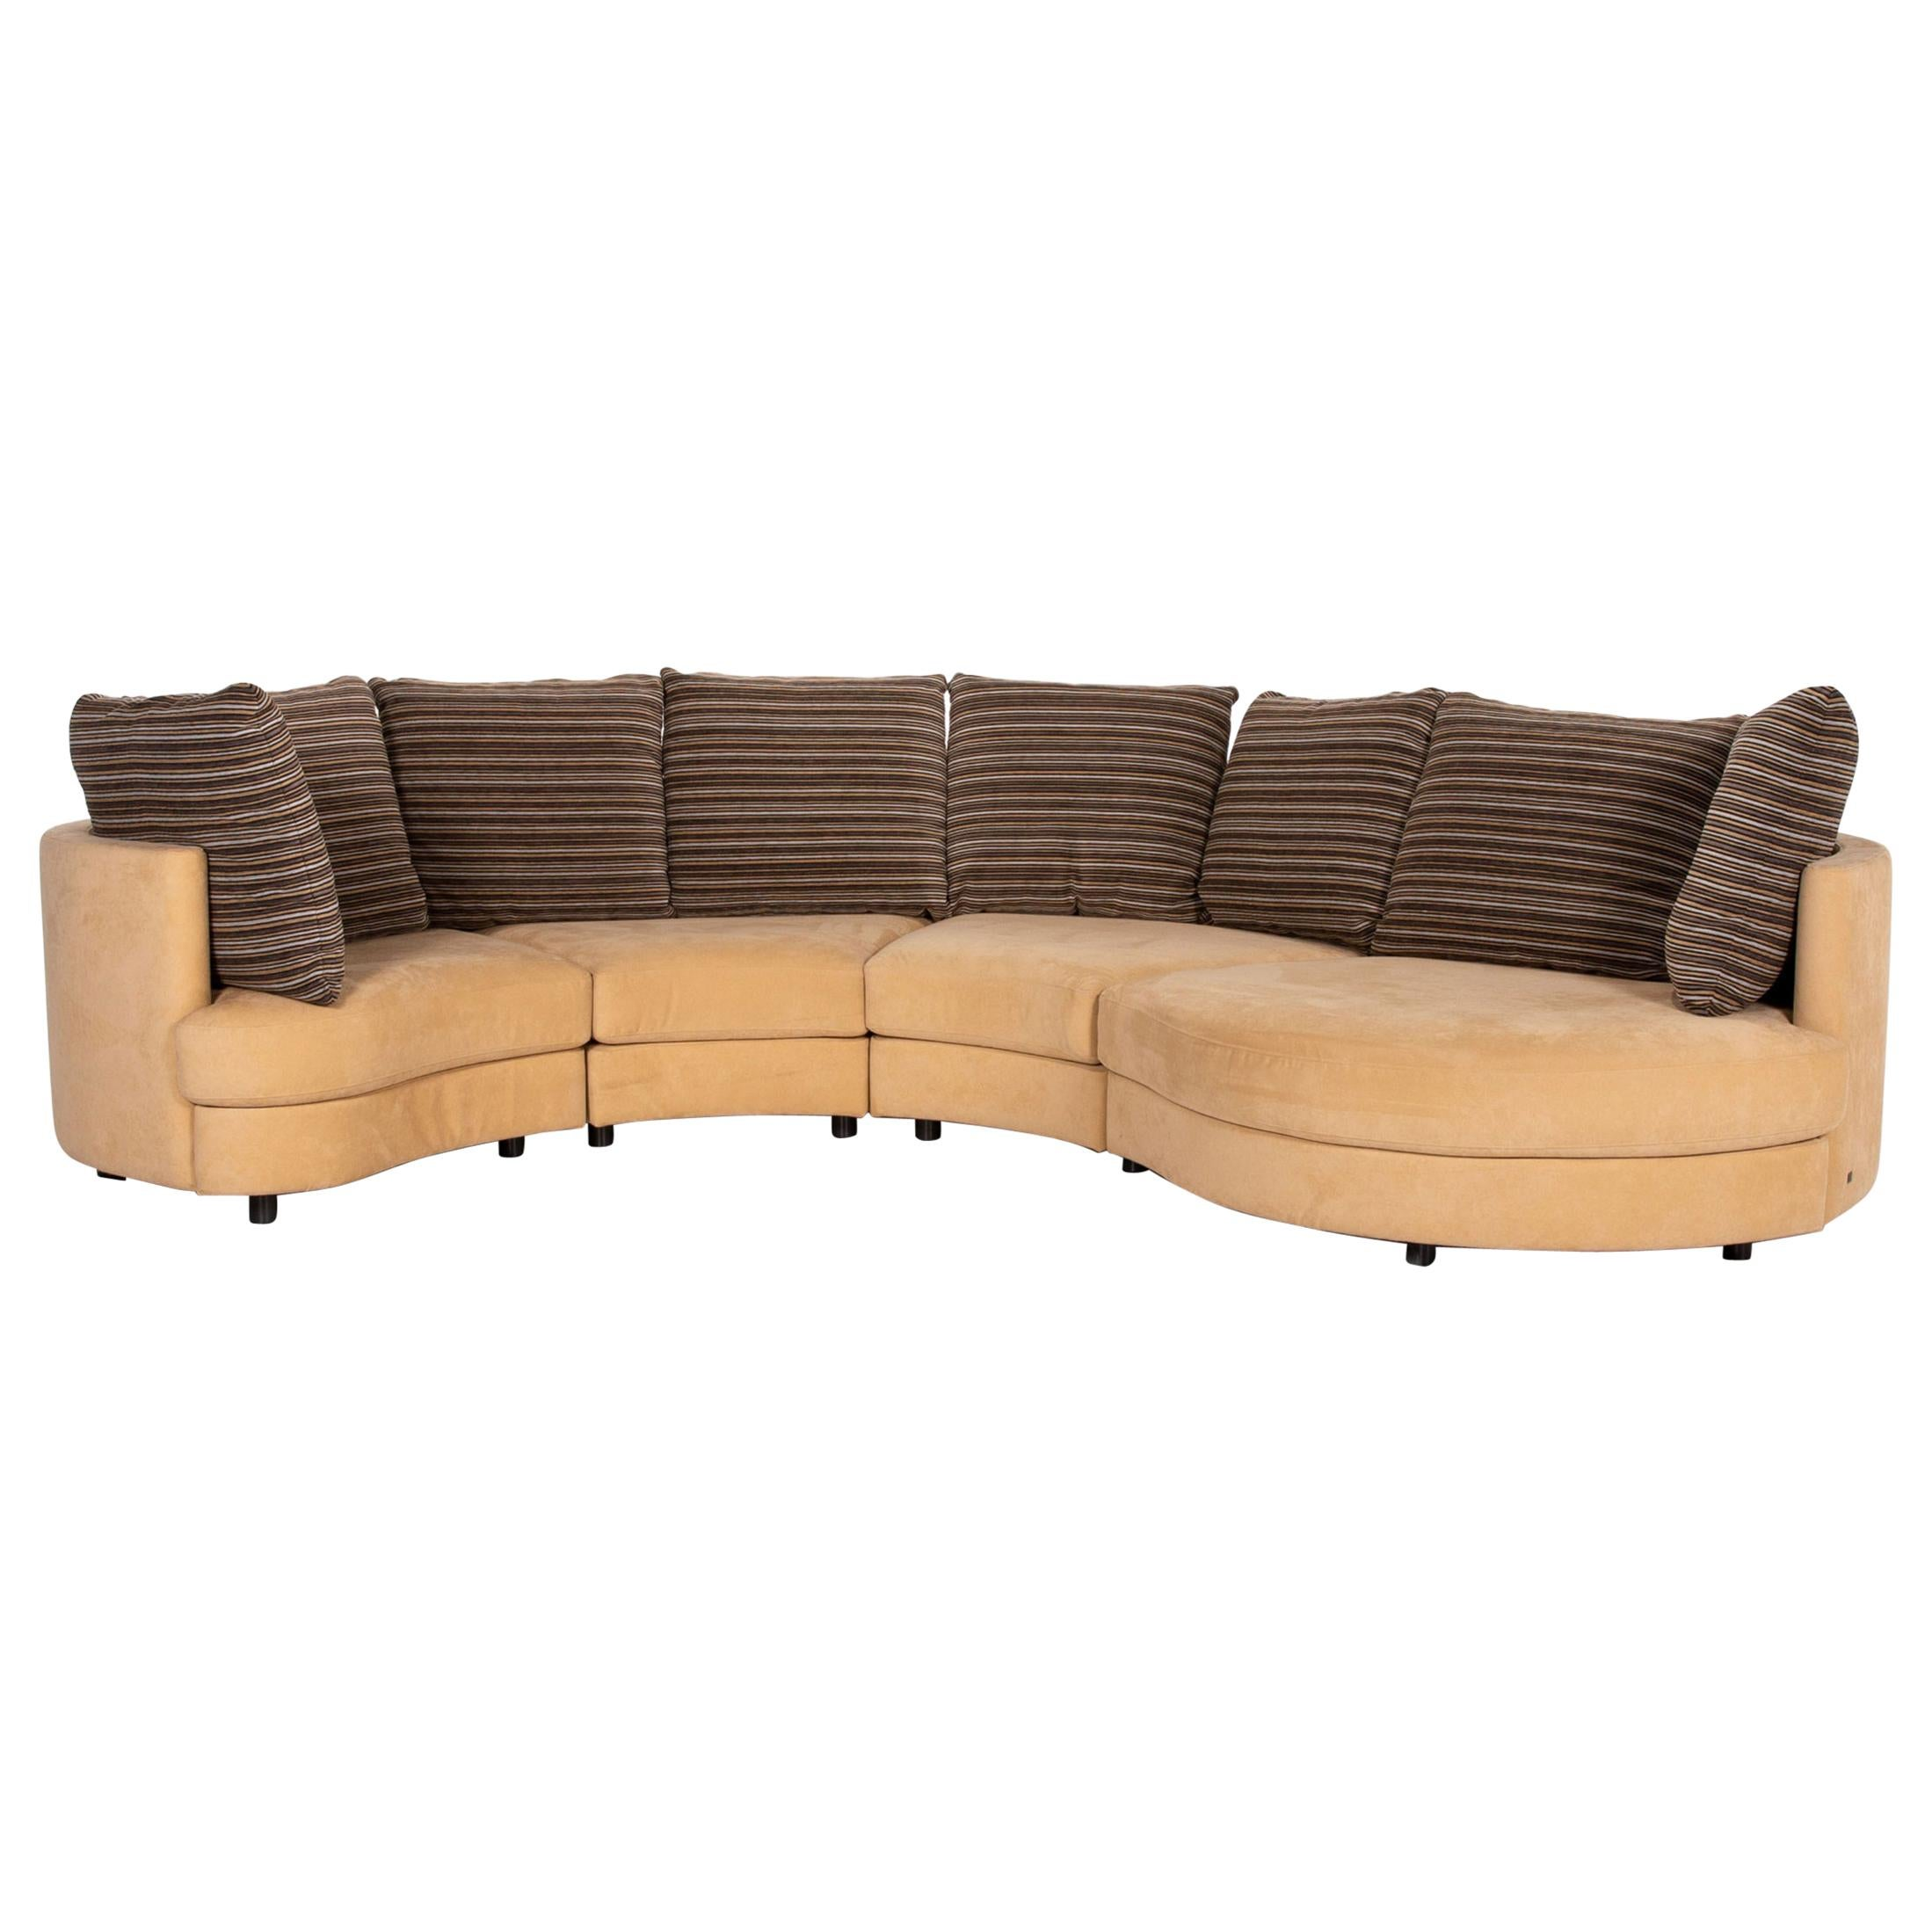 Rolf Benz Fabric Corner Sofa Beige Patterned Sofa Couch